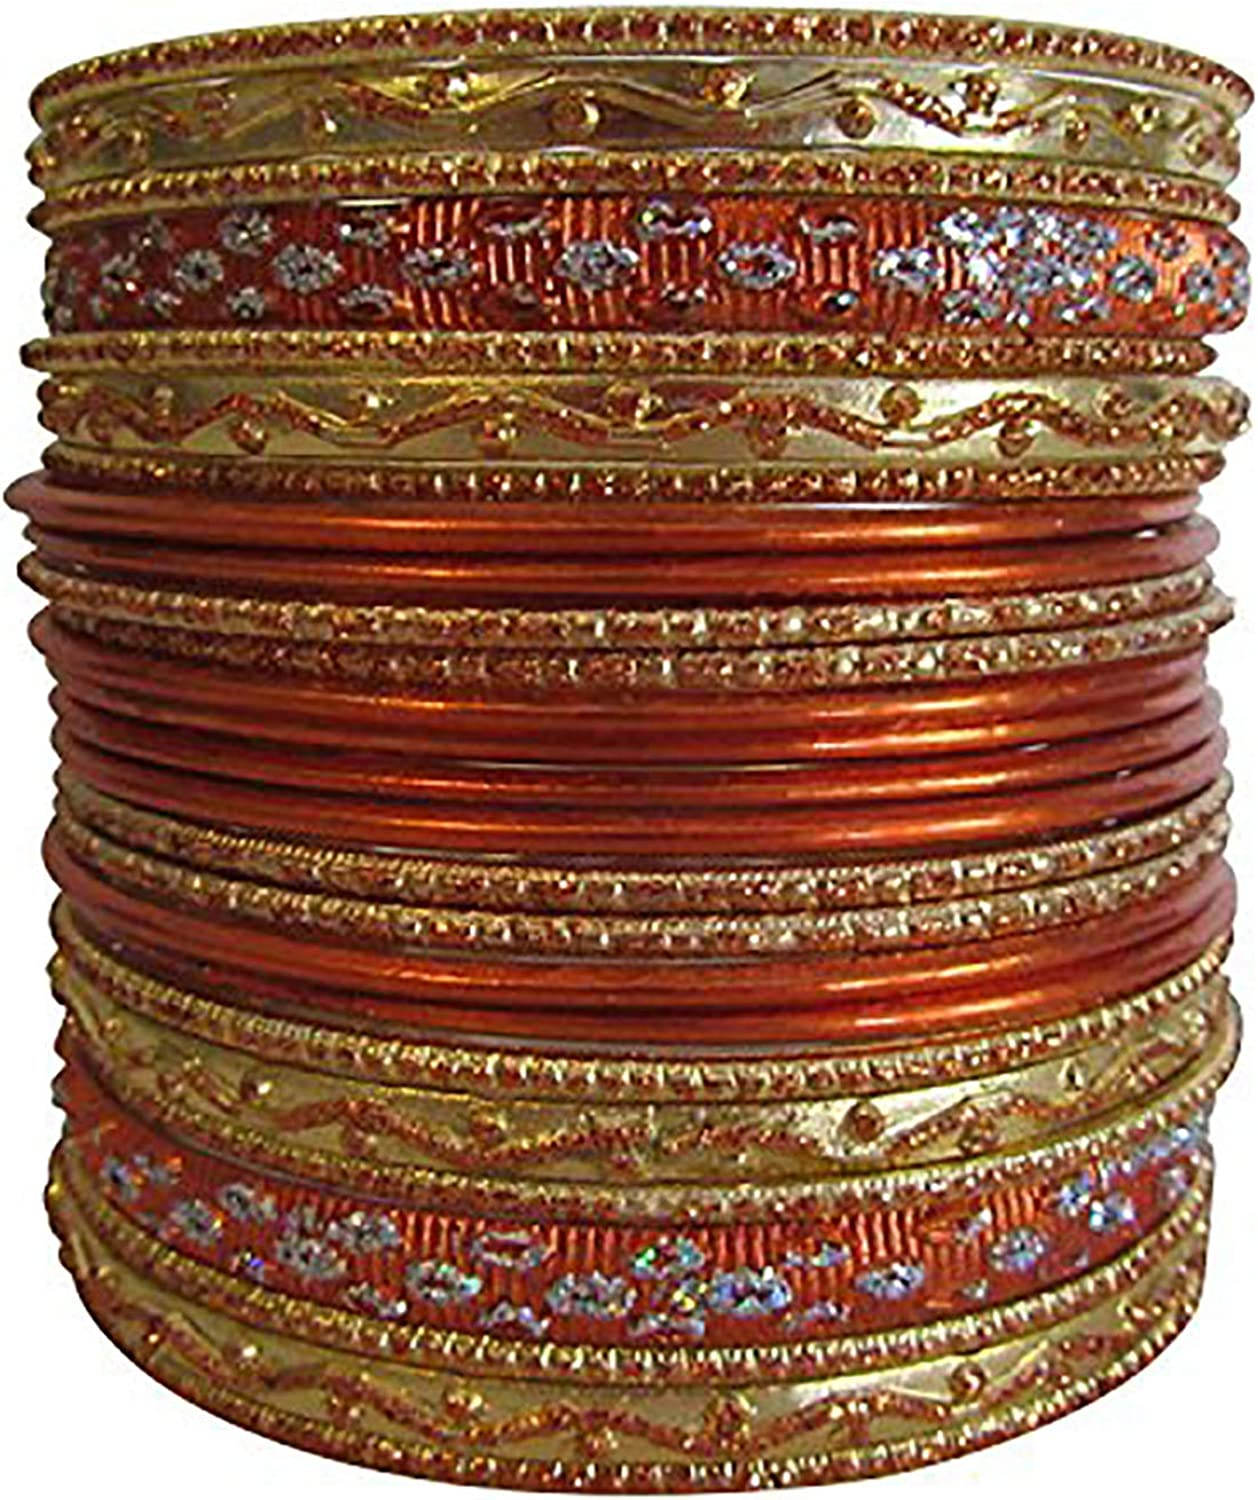 LaRaso Co Bangle Bracelets...